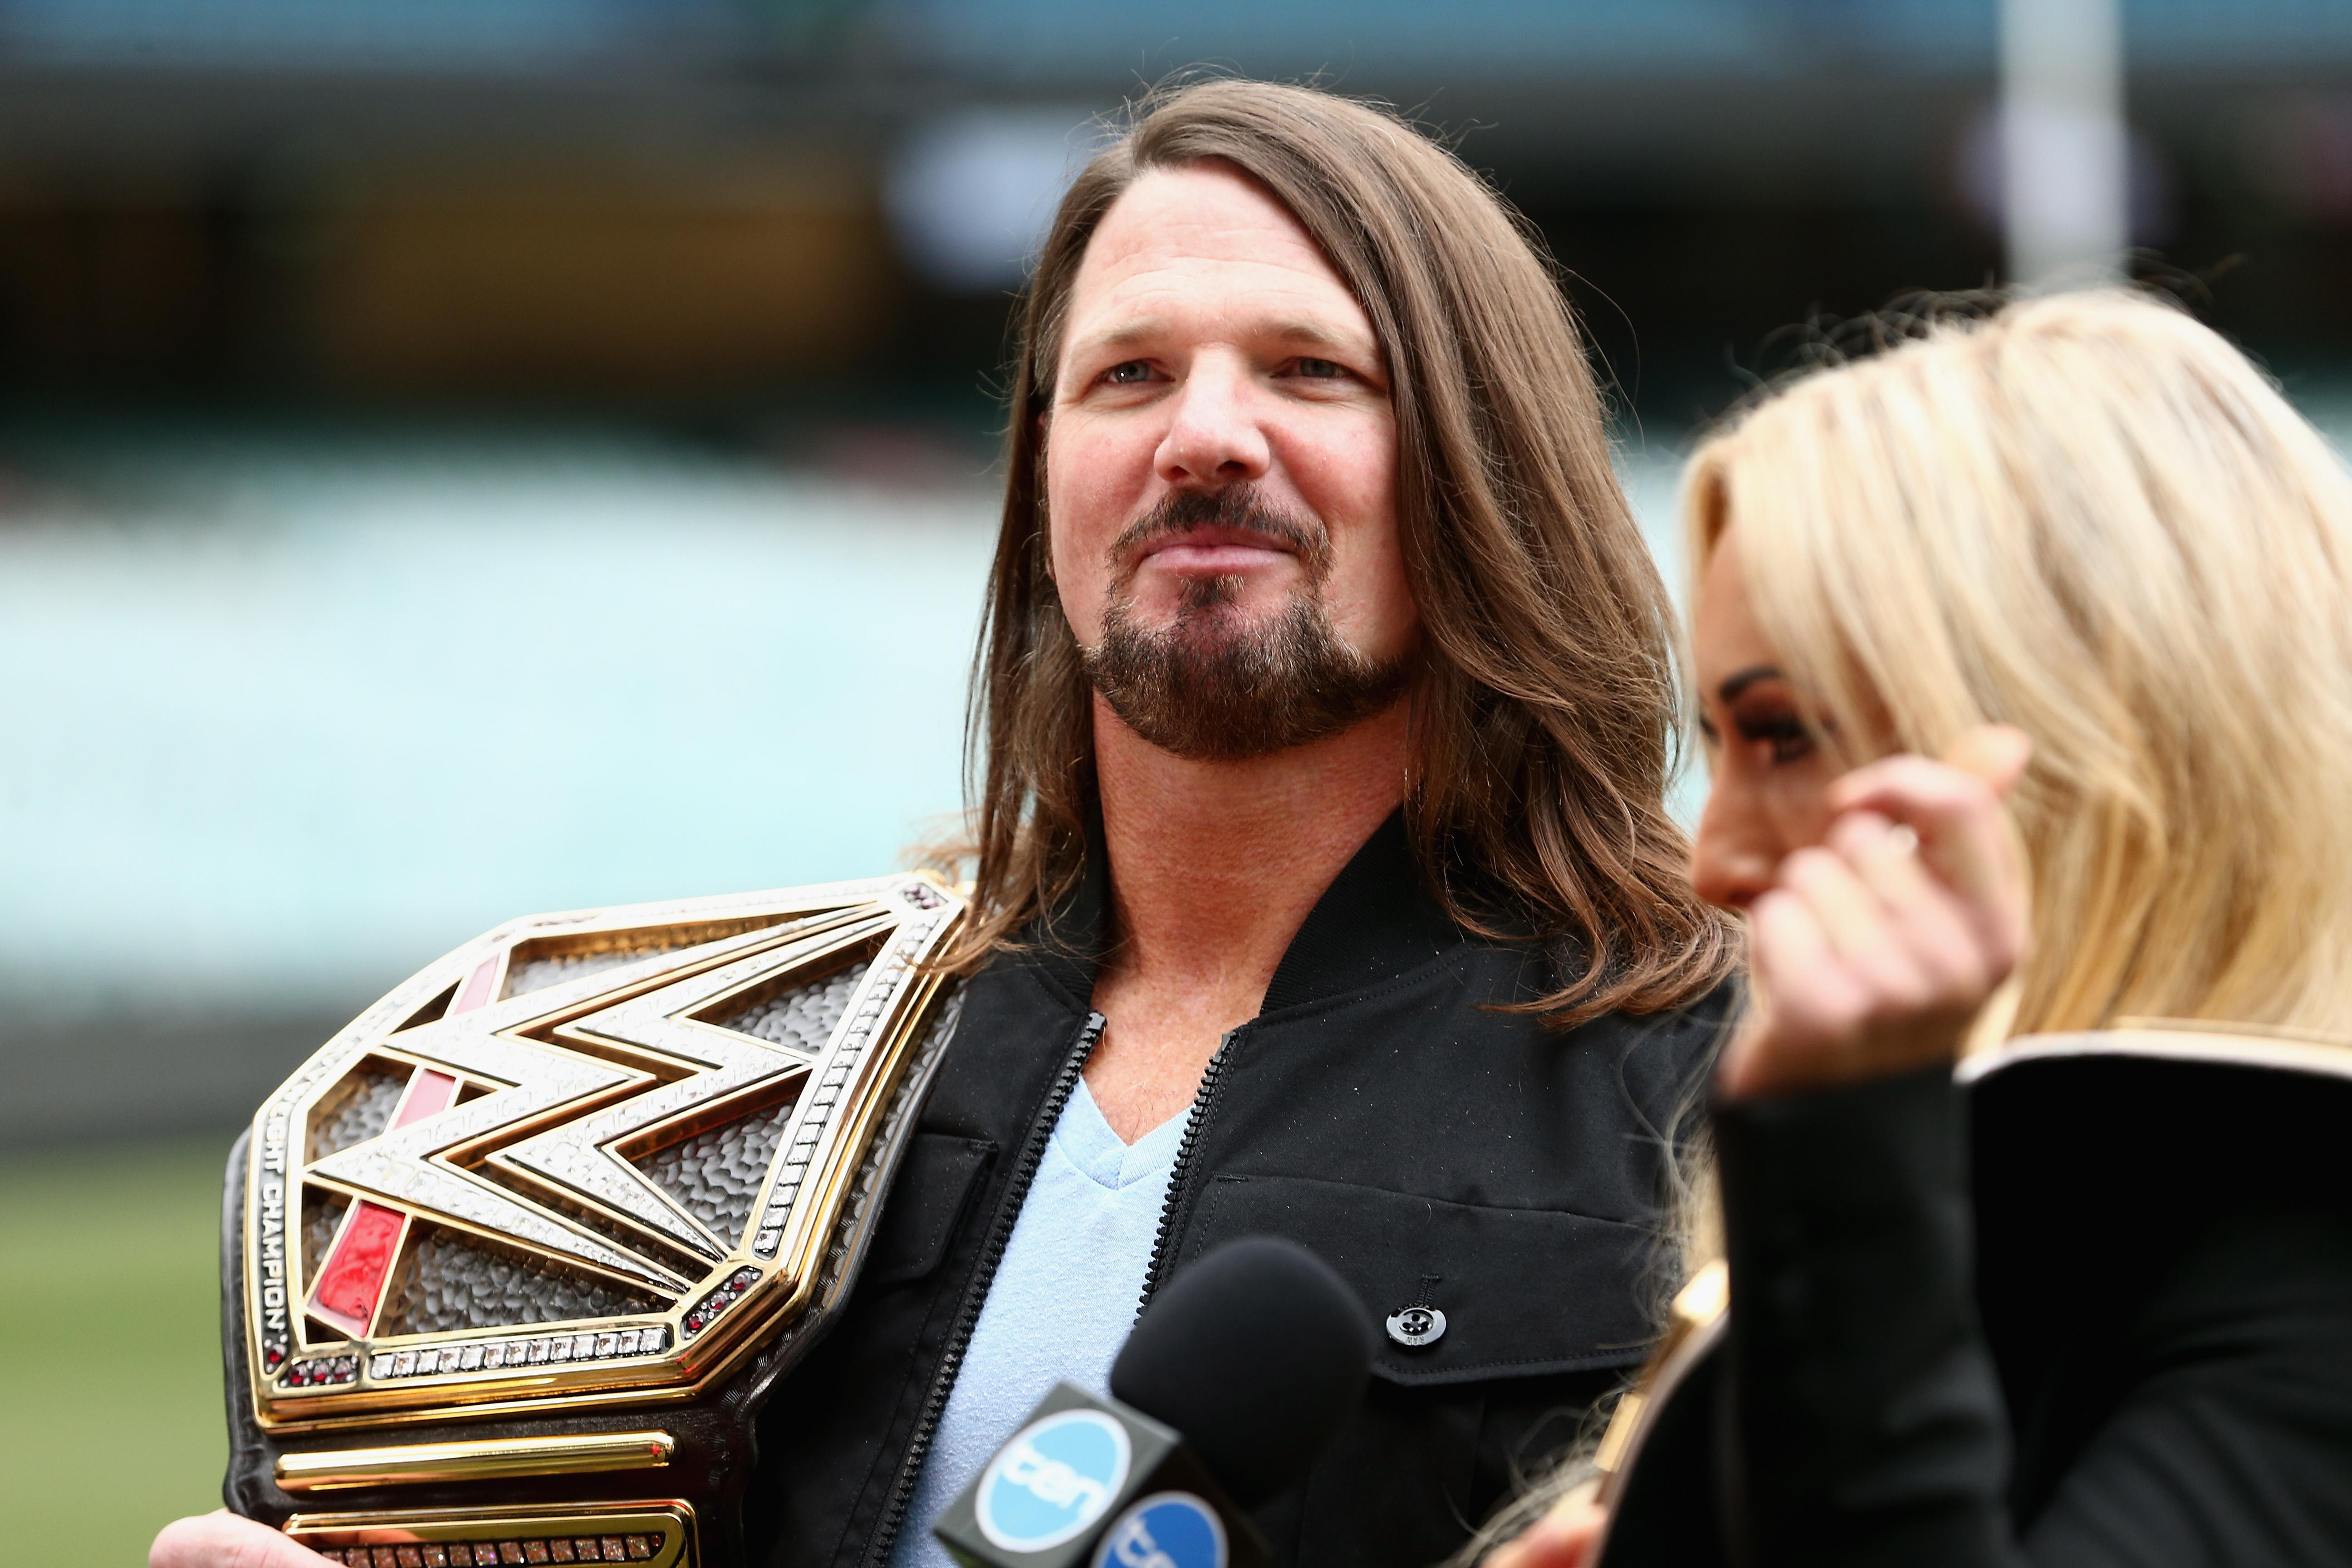 Rumor - AJ Styles' Signs a New WWE Contract, Styles Denies those Rumors